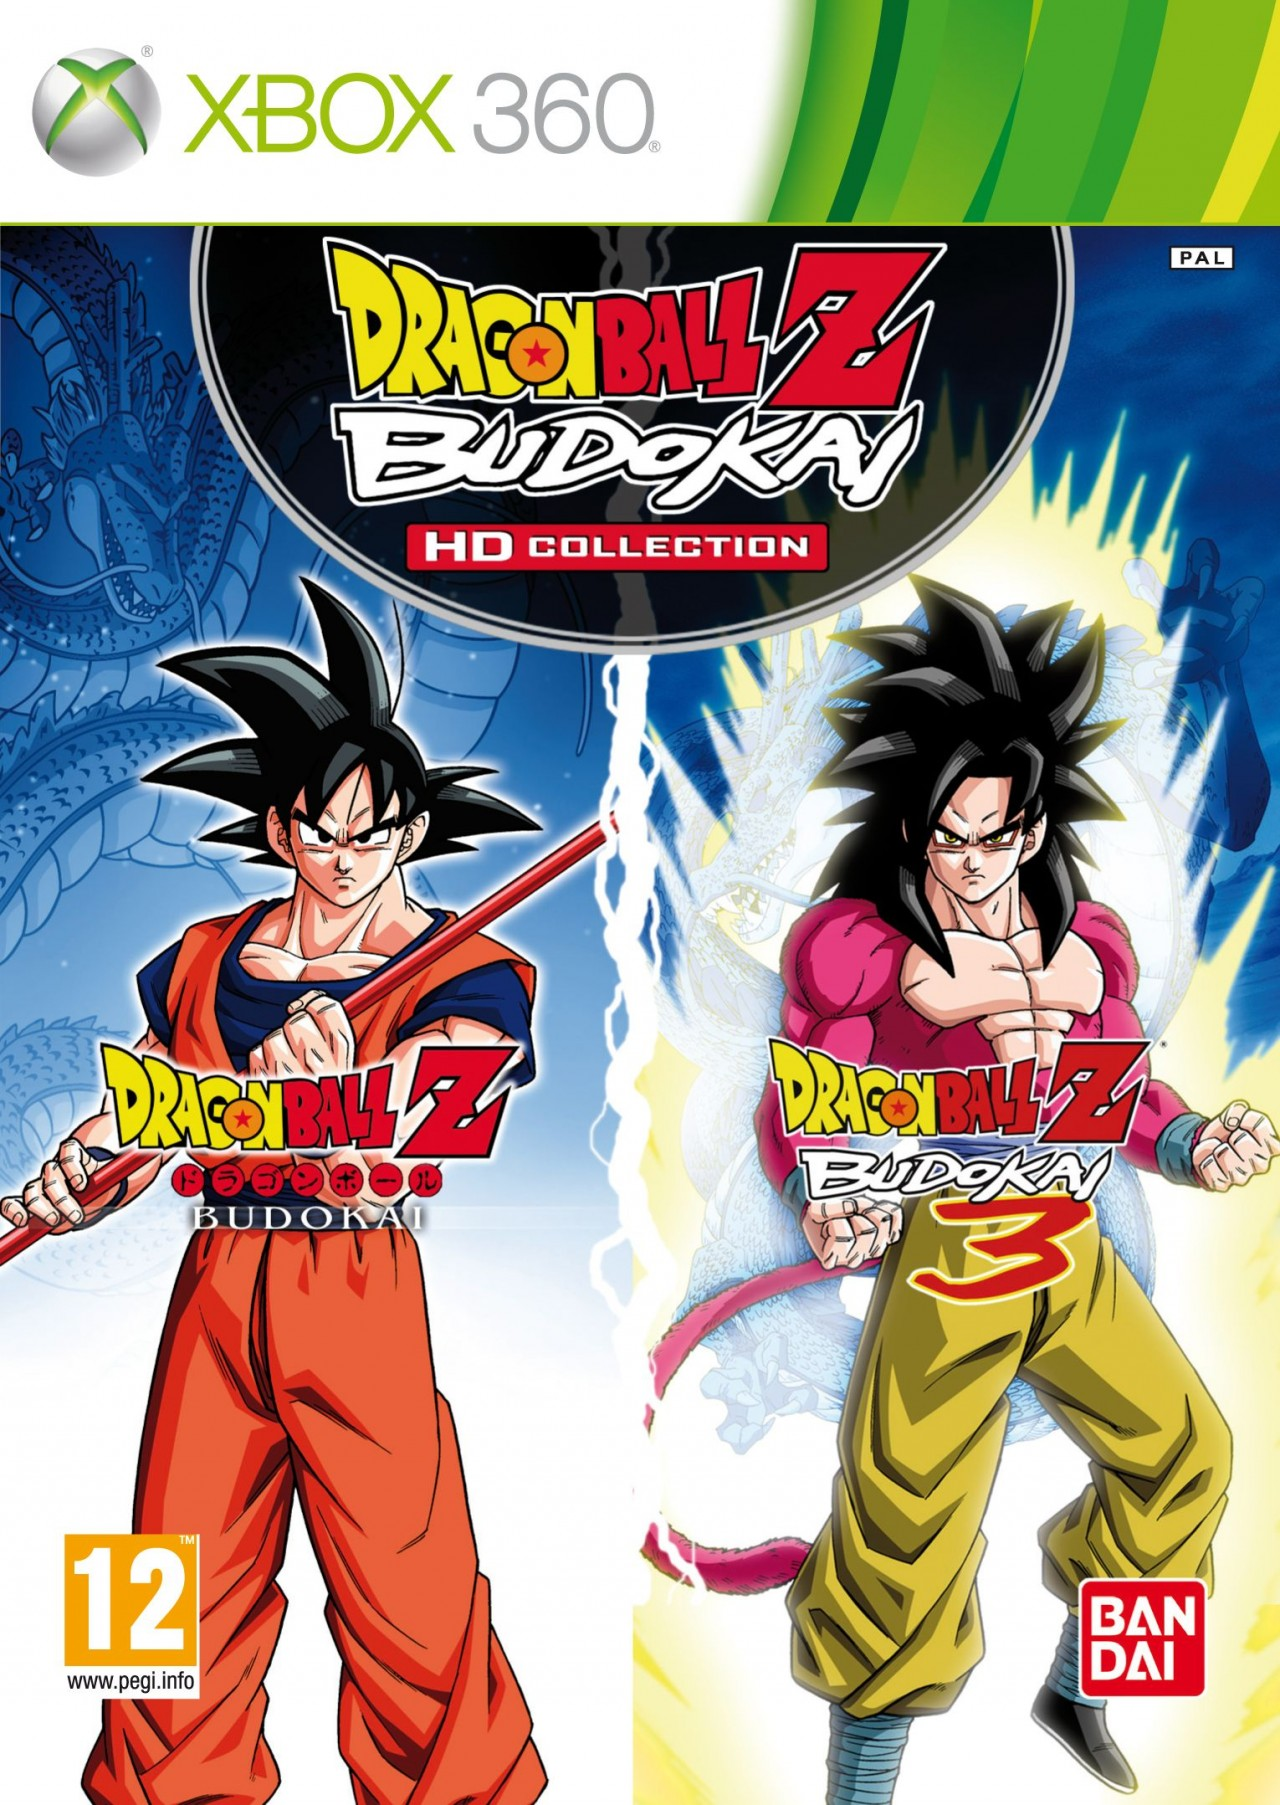 Dragon ball z hd sur xbox 360 et ps3 - Jeux info dragon ball z ...